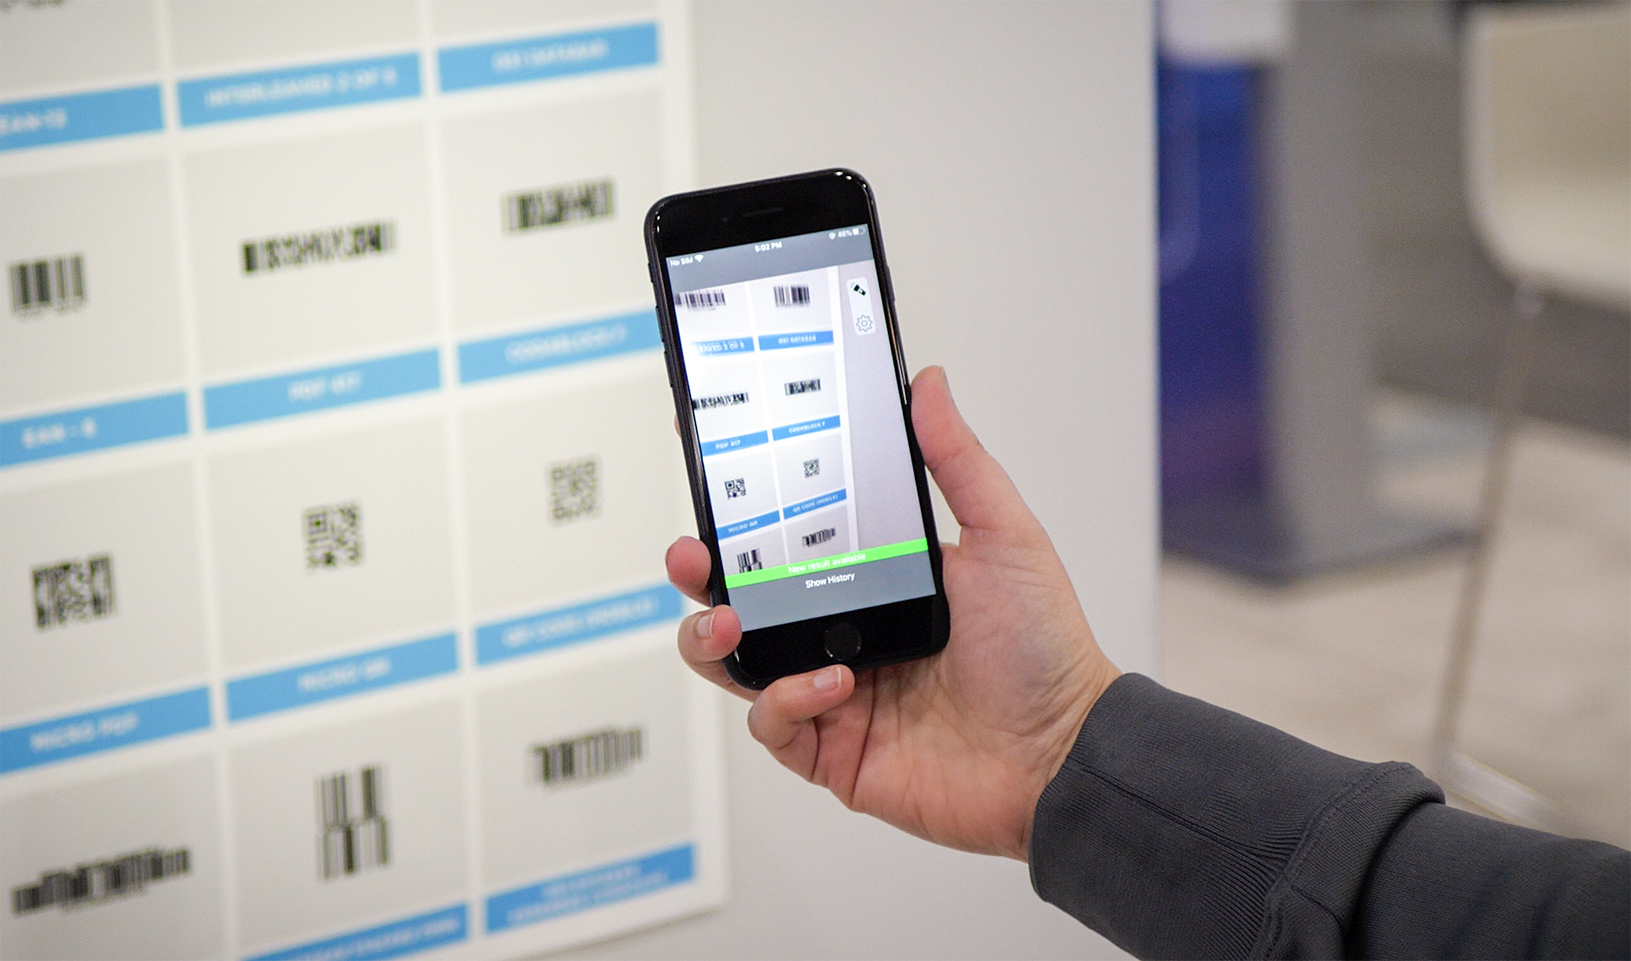 Aila's SoftScan for any iOS device scans over 45 barcode types